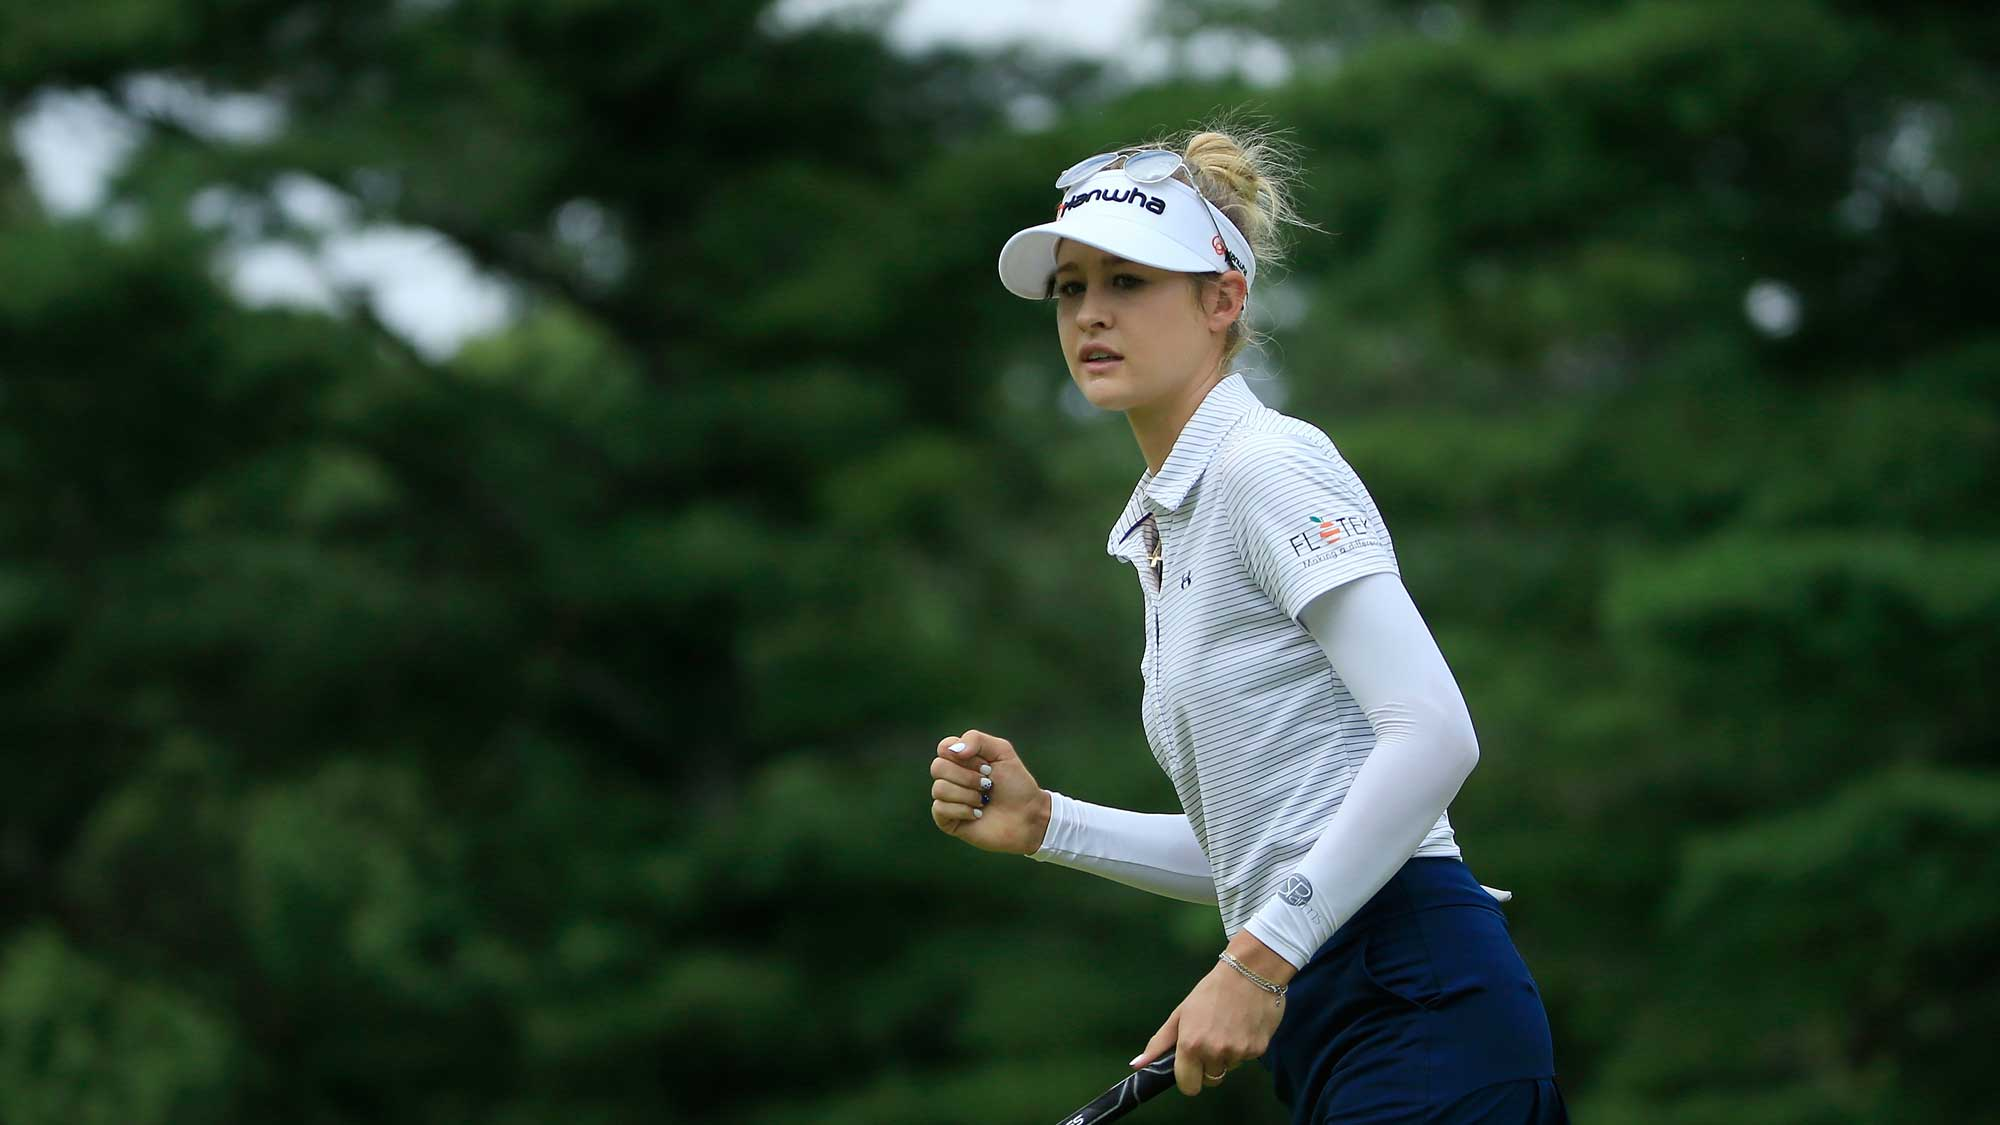 Gerina Piller maintains one-stroke lead at Marathon Classic